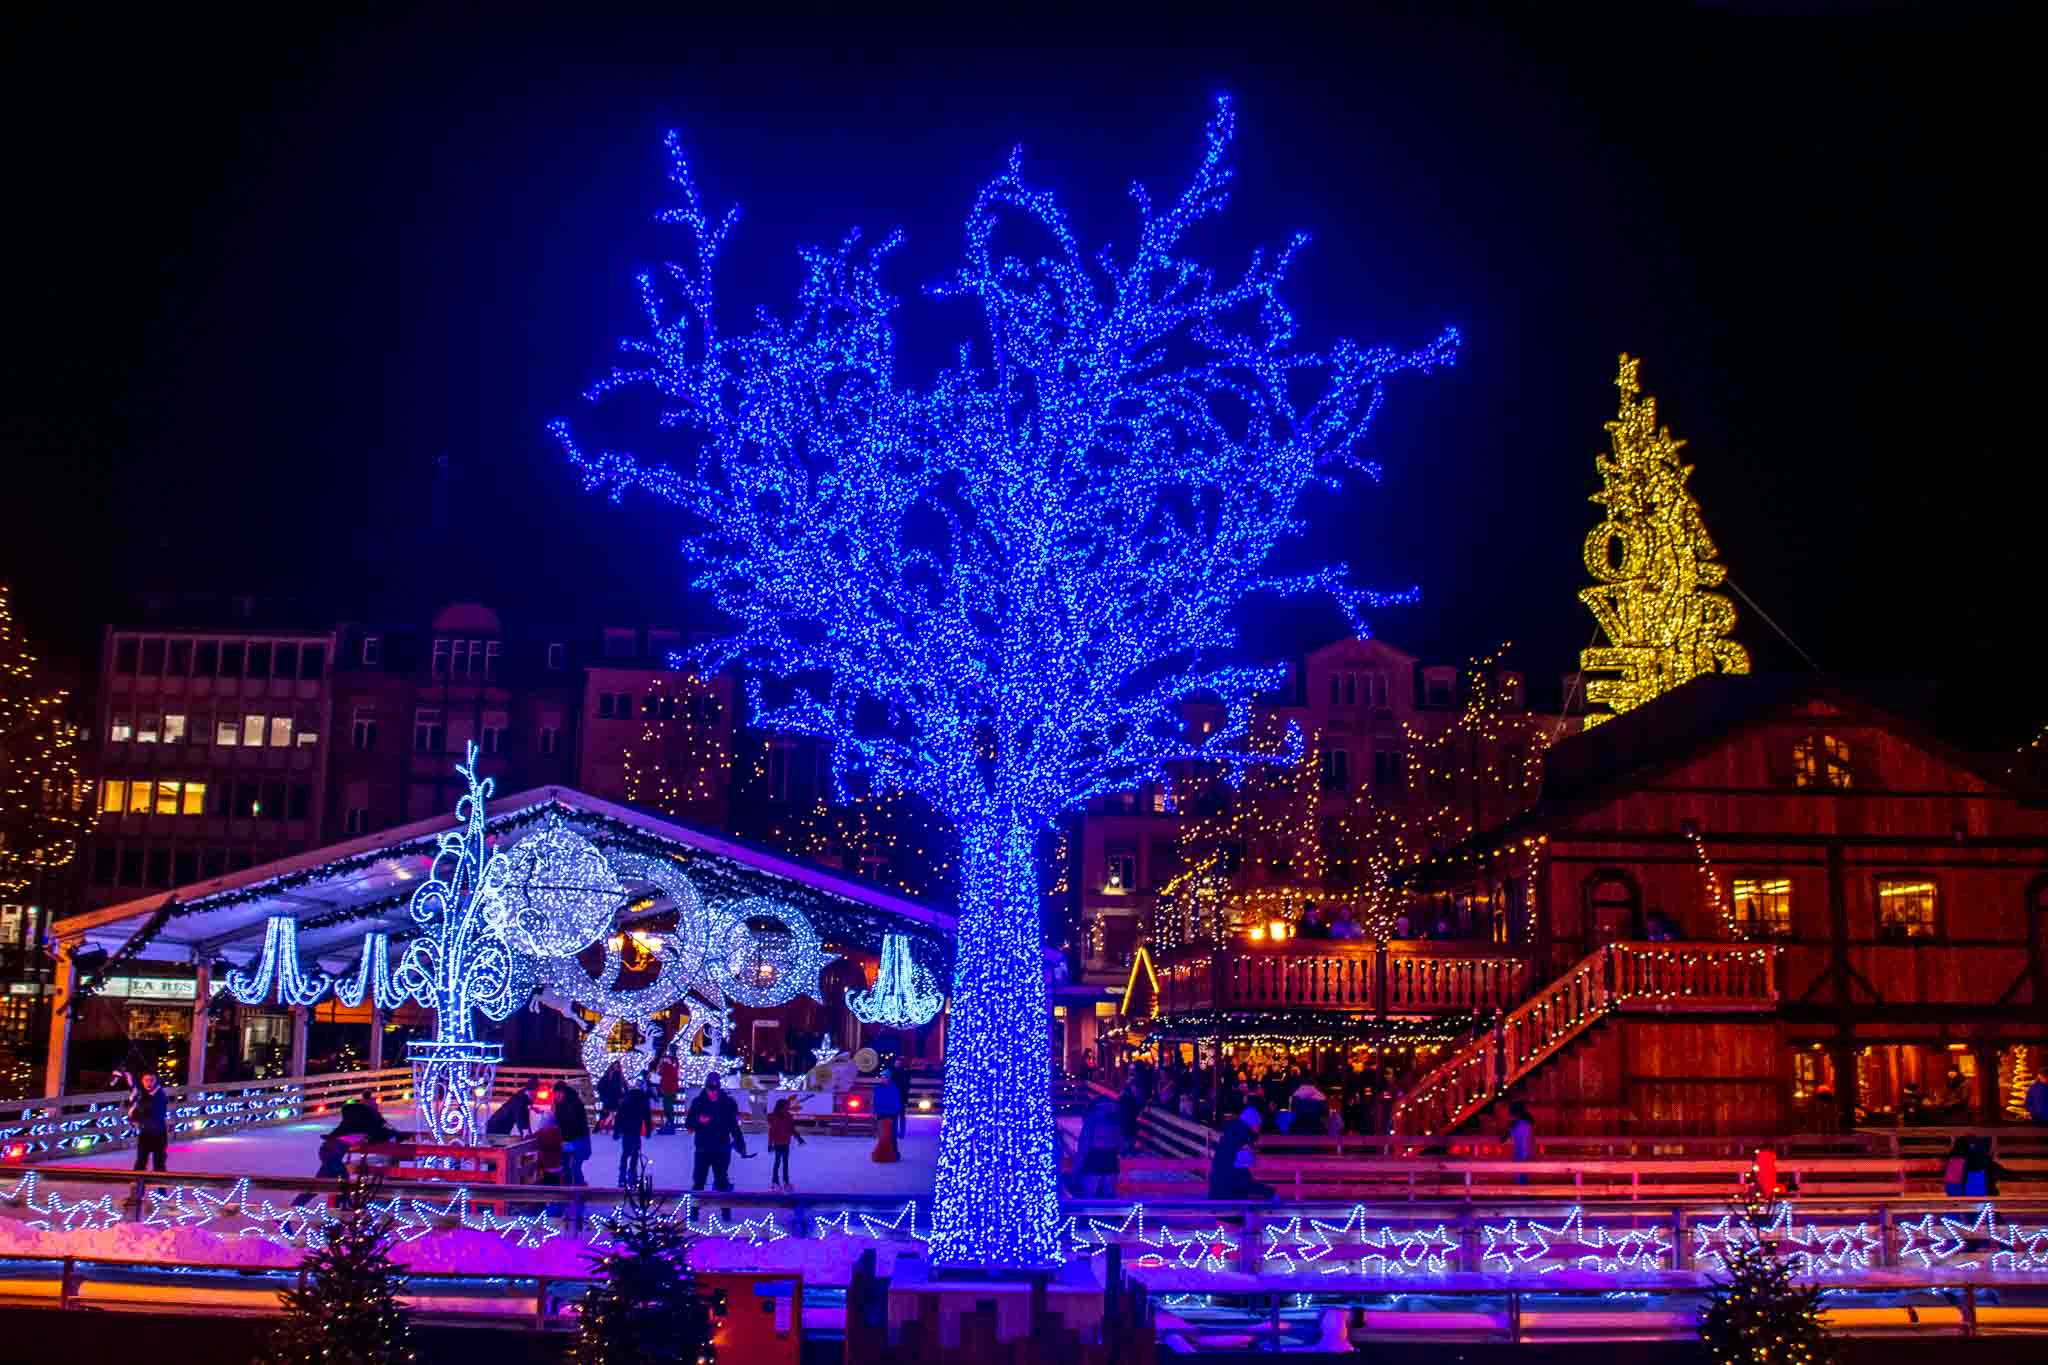 The Christmas markets are a highlight of Luxemburg sightseeing in winter